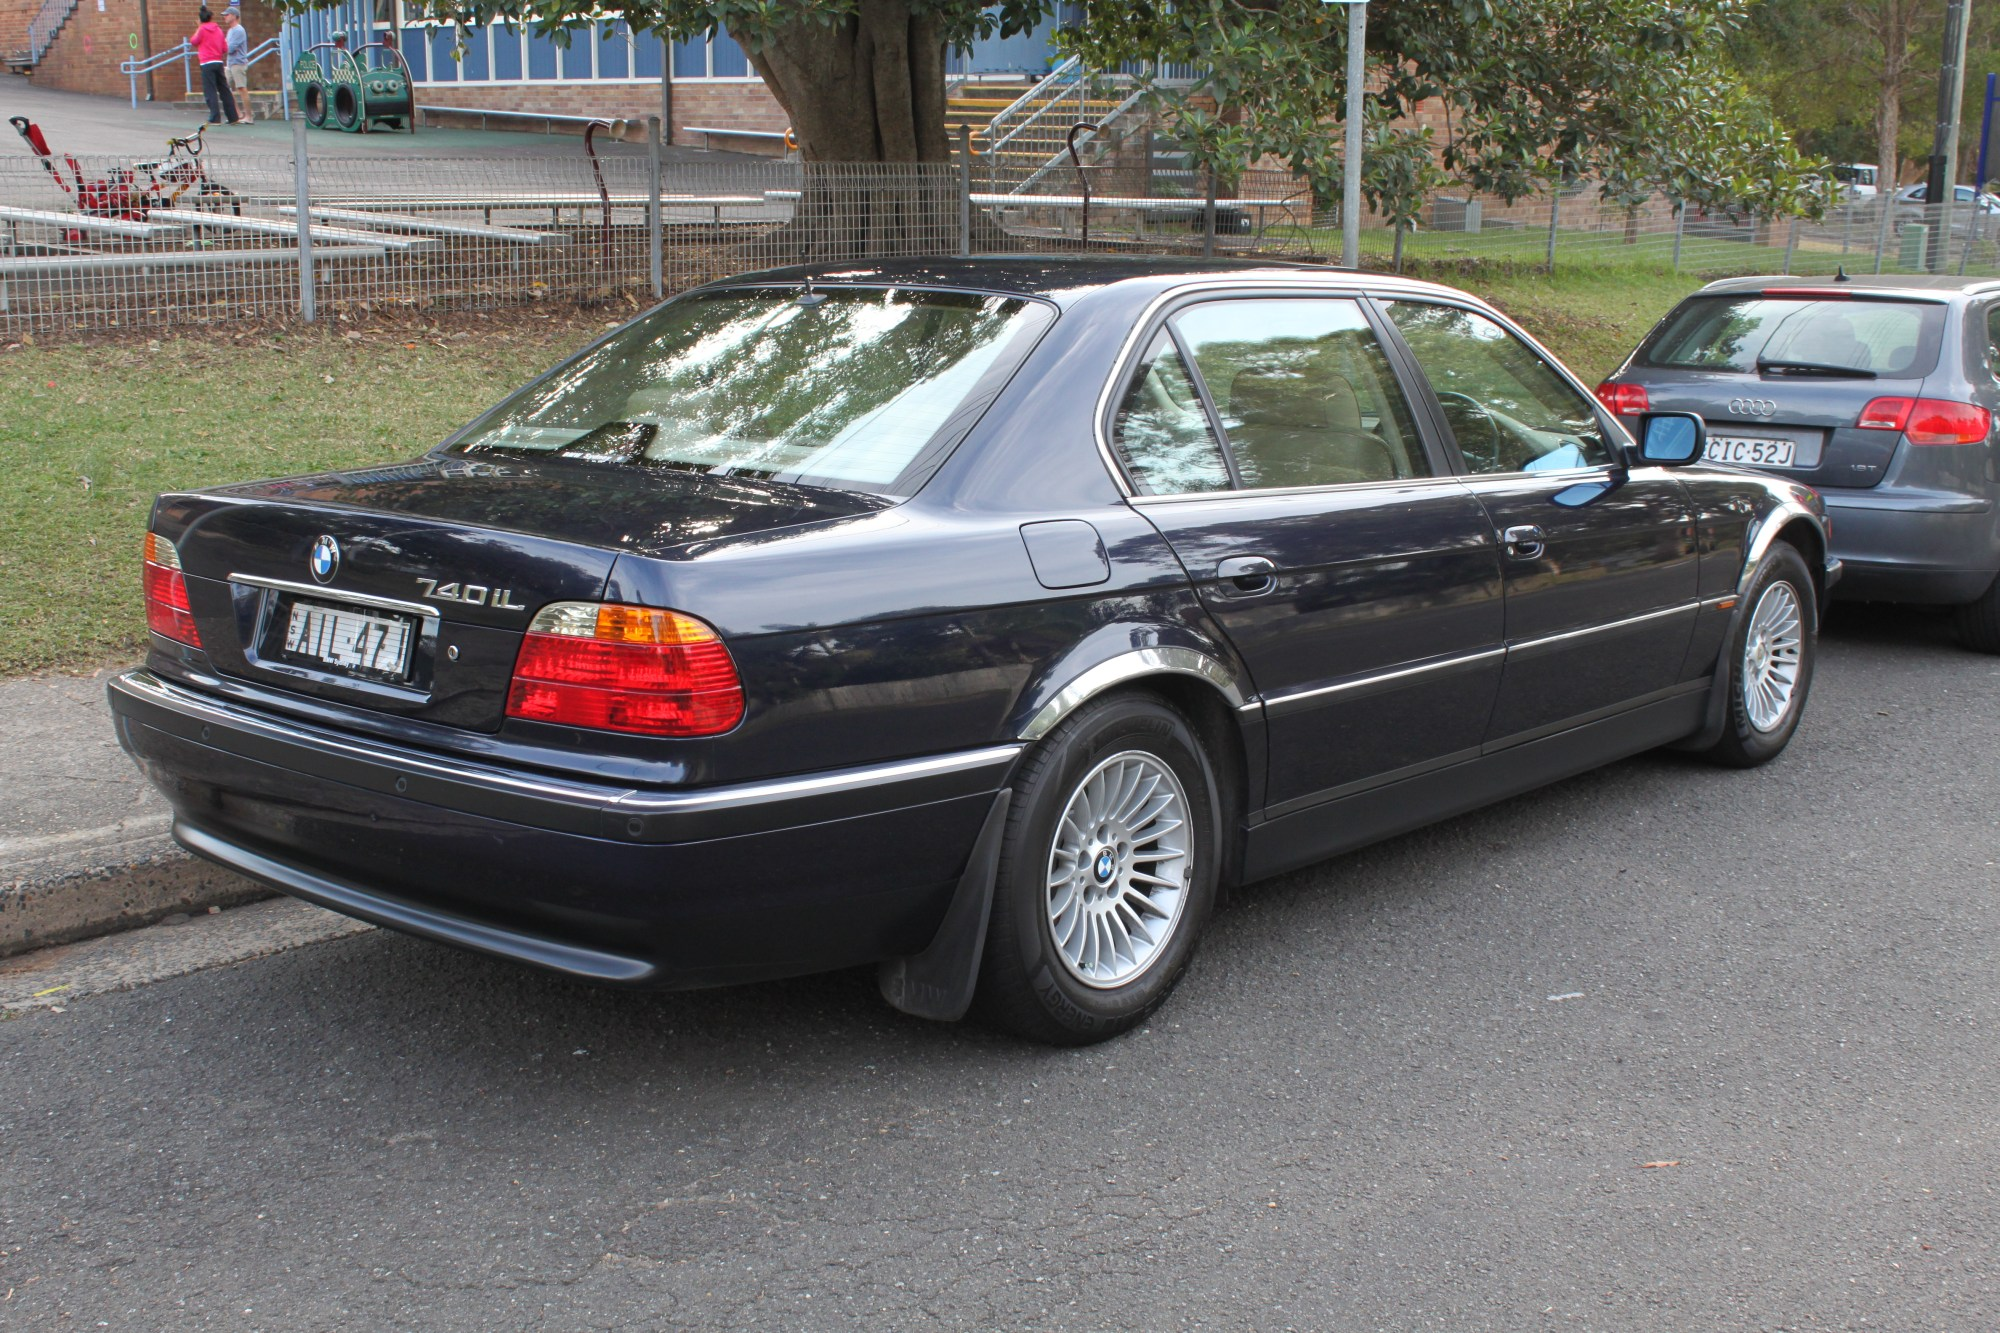 hight resolution of file 2000 bmw 740il e38 sedan 27204434416 jpg